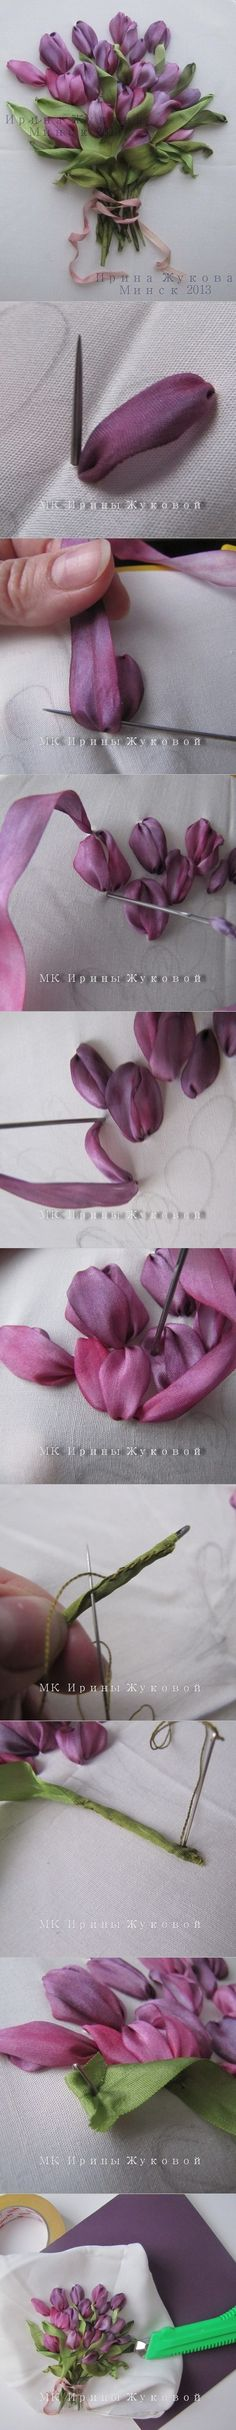 How to Make Ribbon Embroidery Flower with Straight Stitch | www.FabArtDIY.com LIKE Us on Facebook ==> https://www.facebook.com/FabArtDIY